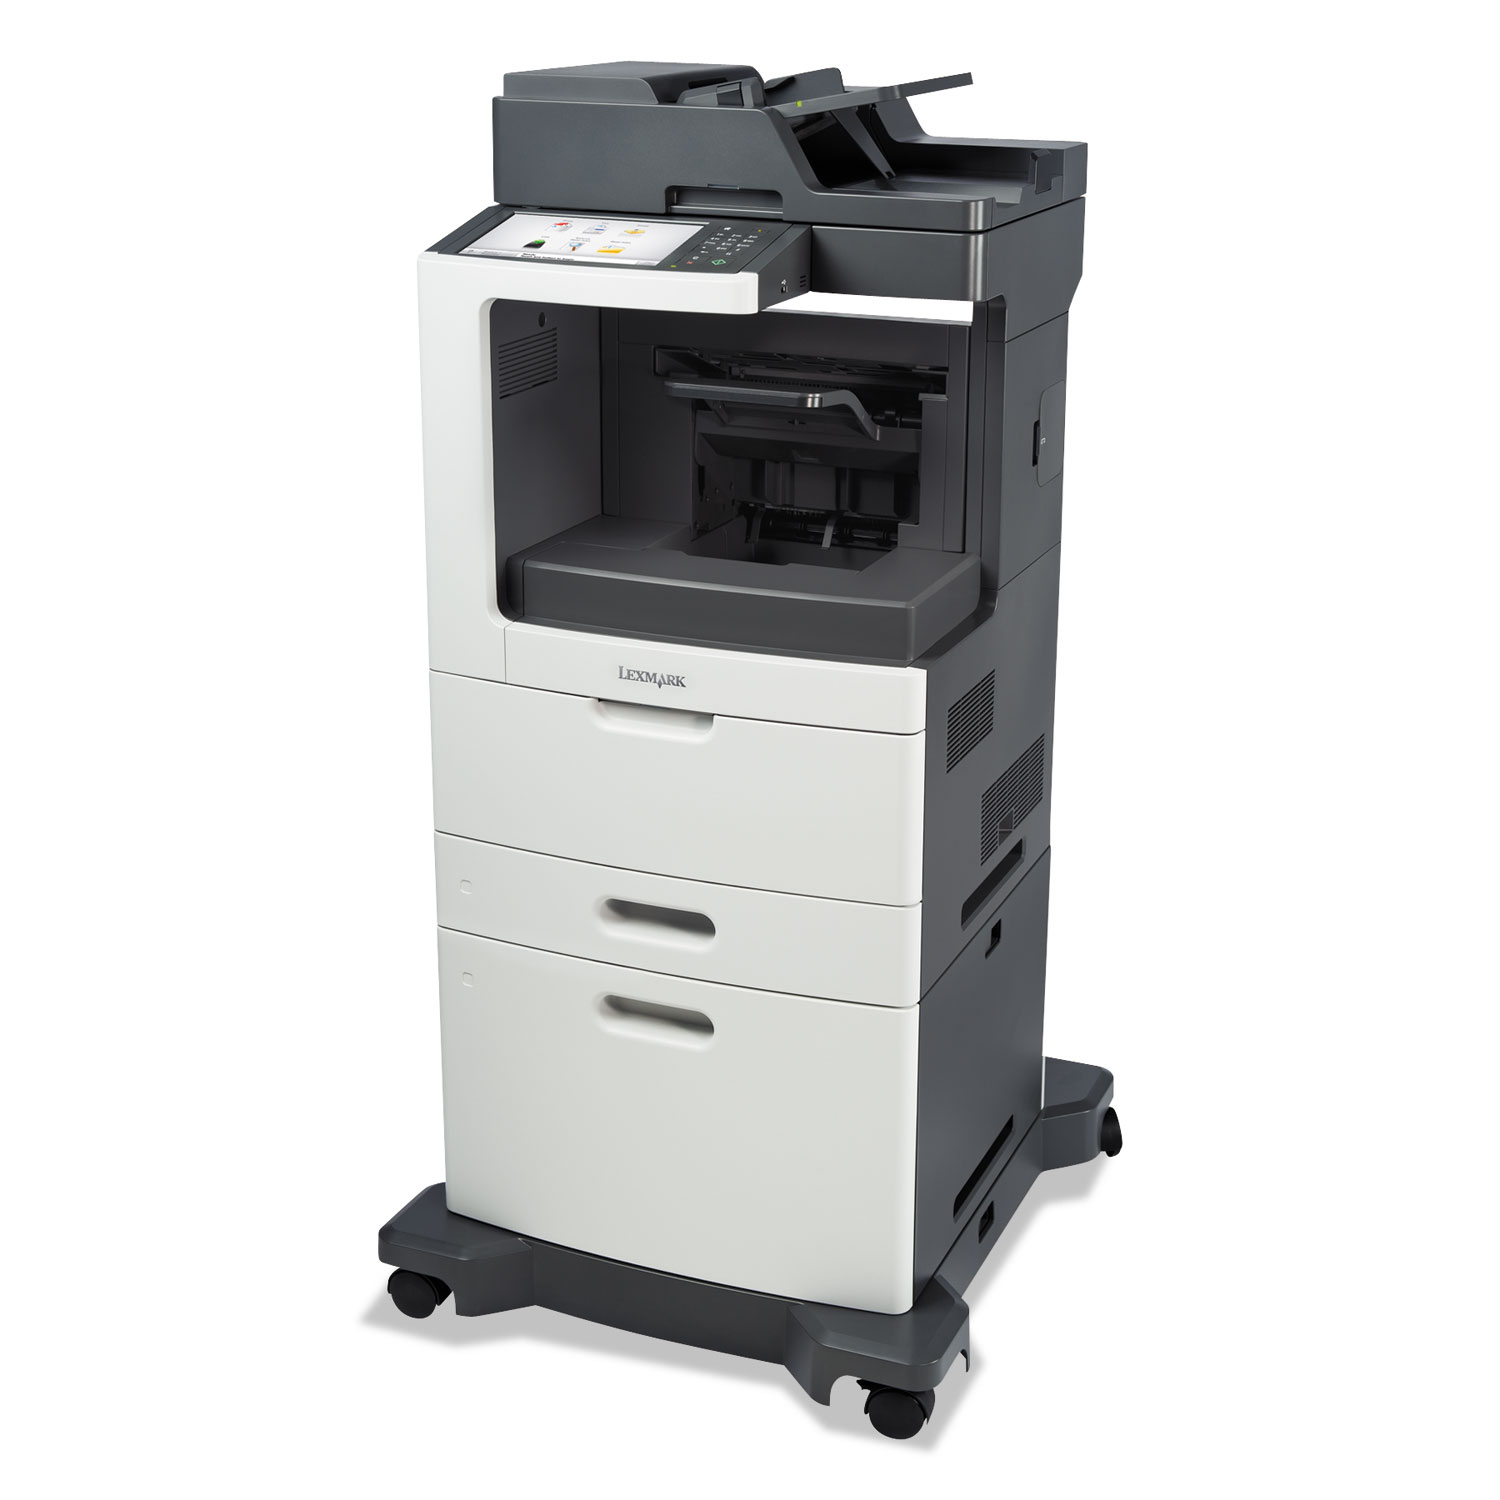 MX811dxe Multifunction Laser Printer, Copy/Fax/Print/Scan